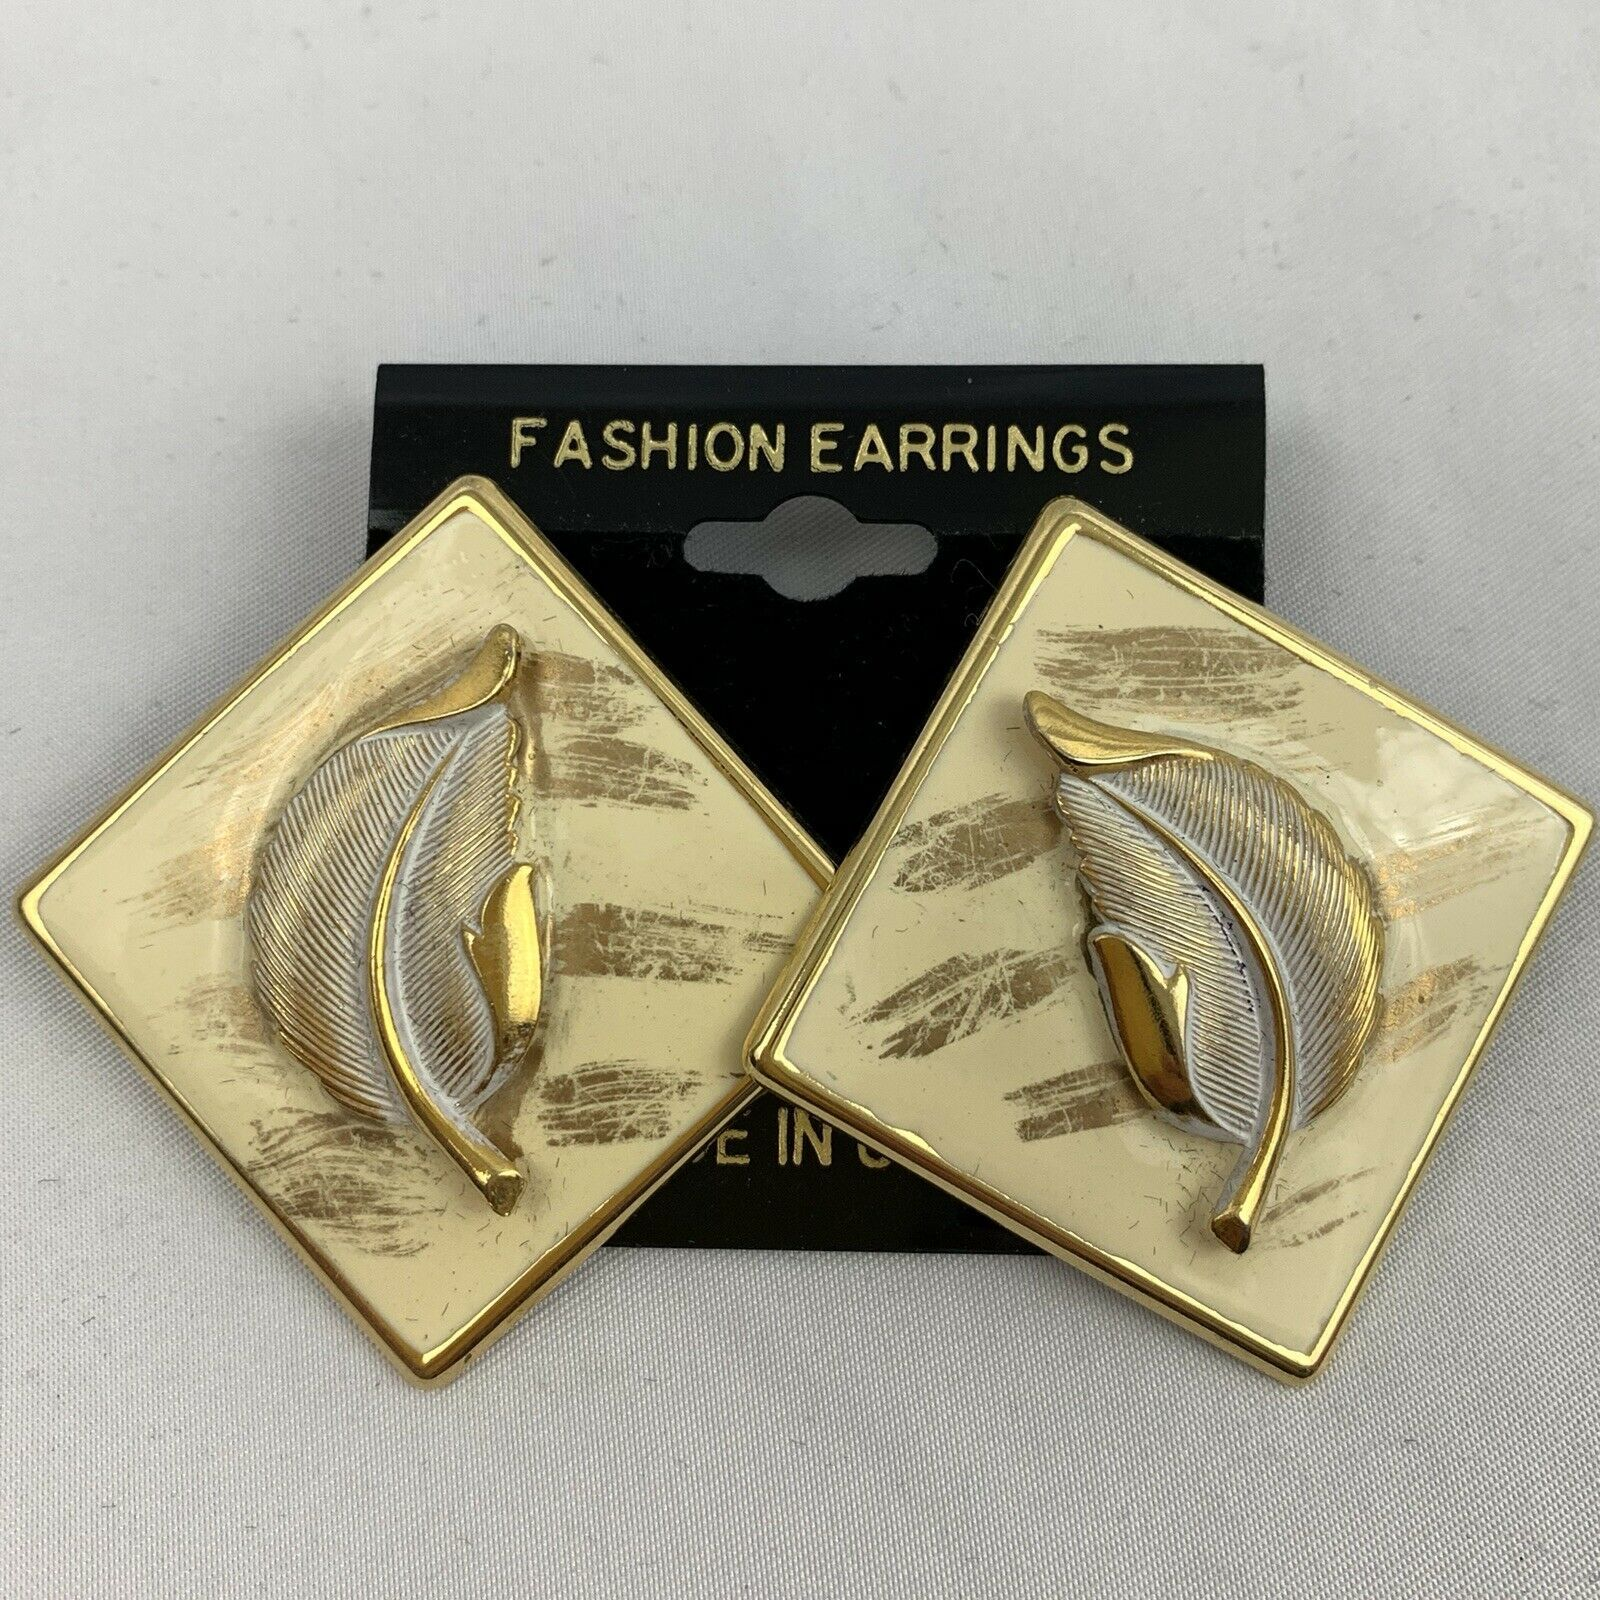 Primary image for Vintage Big Enamel Feather Earrings NOS 80s 90s Cream Gold Tone Diamond Shape